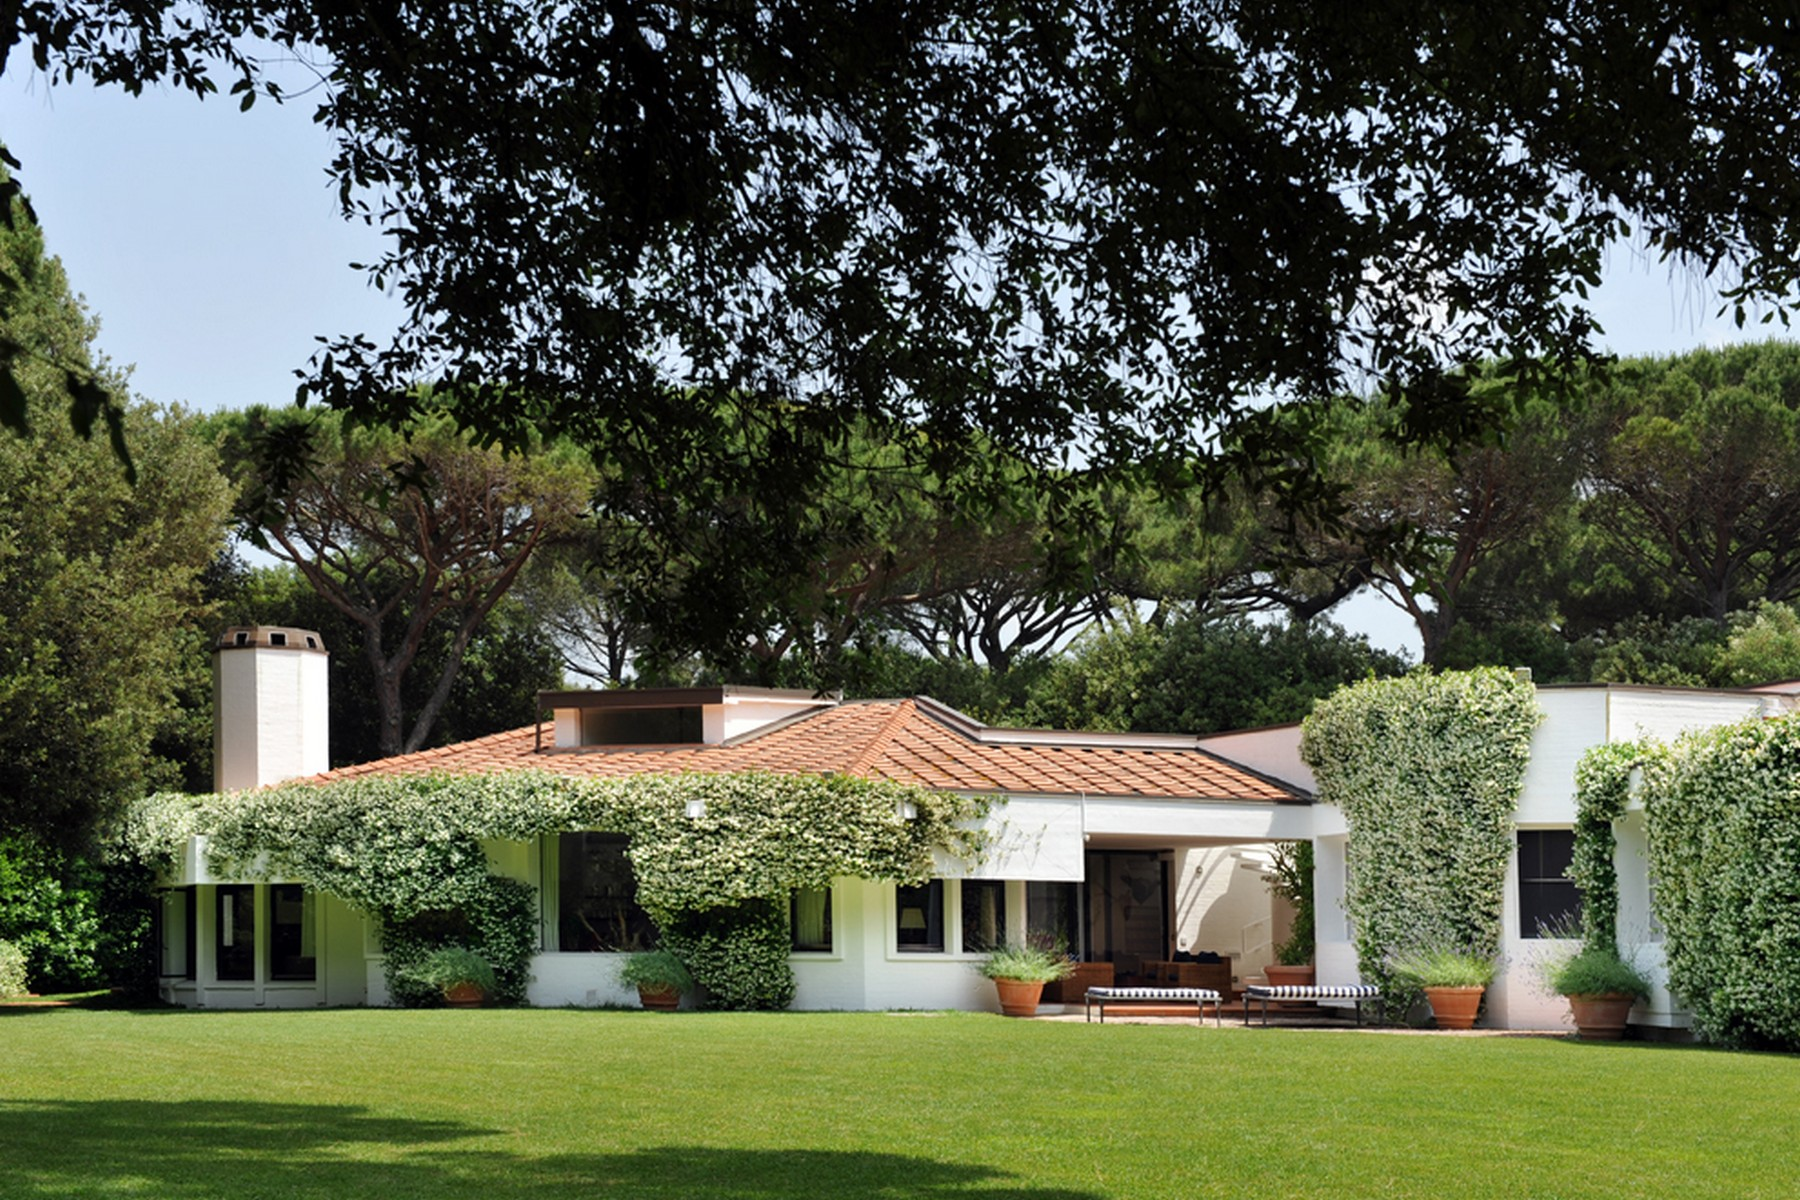 Additional photo for property listing at Stately estate with private beach Bolgheri Bolgheri, Livorno 57020 Italien